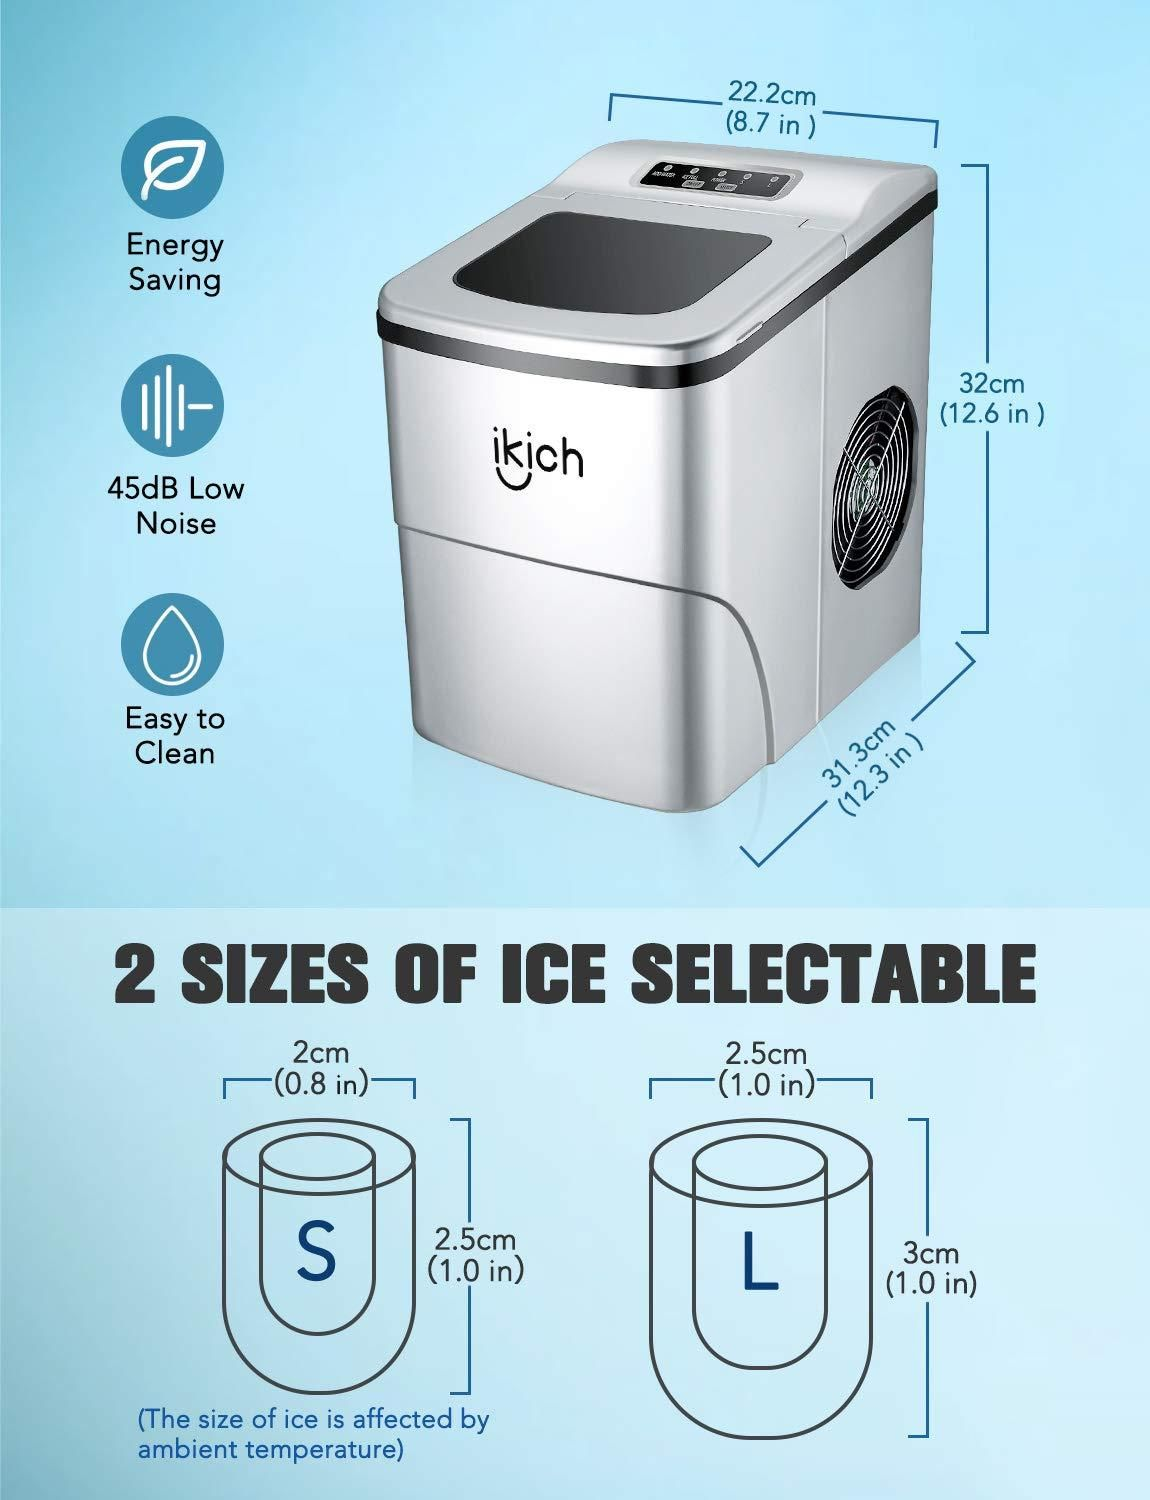 Portable Ice Maker Machine For Countertop Ice Cubes Ready In 6